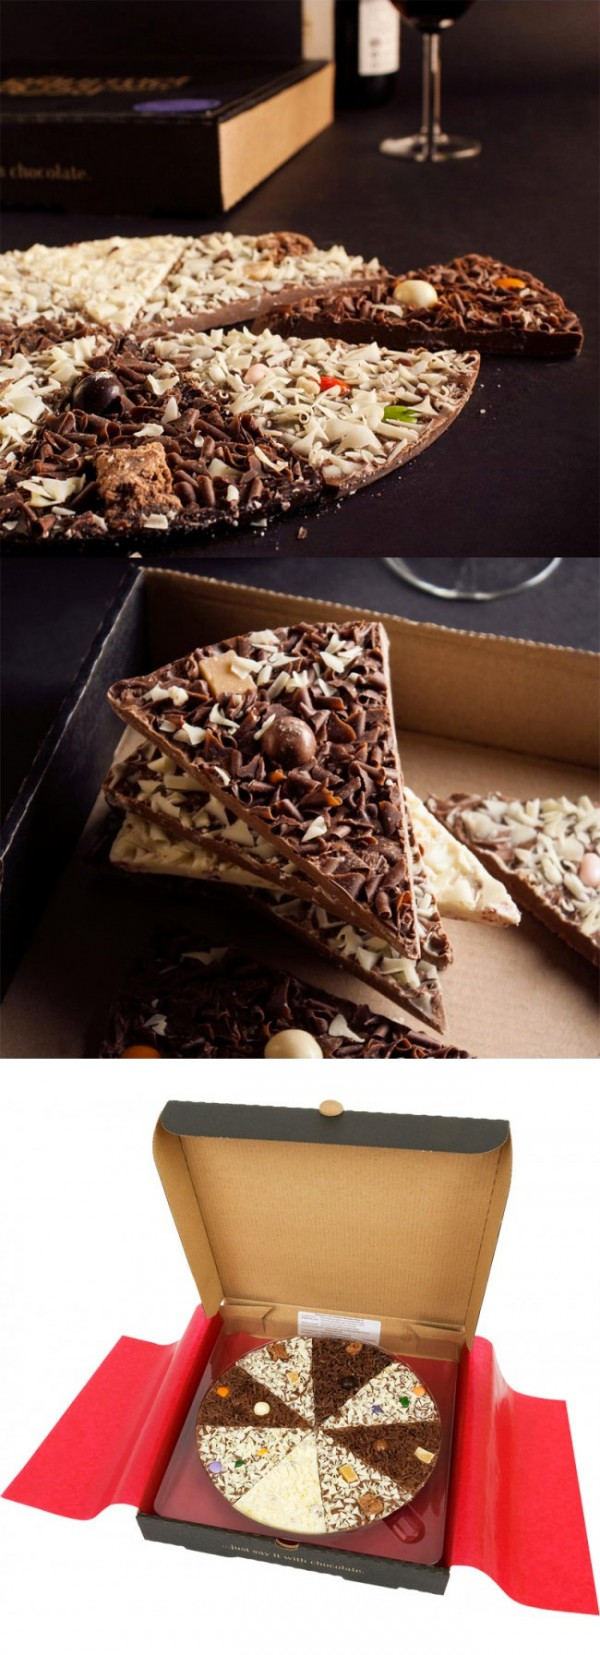 Pizza de chocolate, la pizza más dulce del mundo